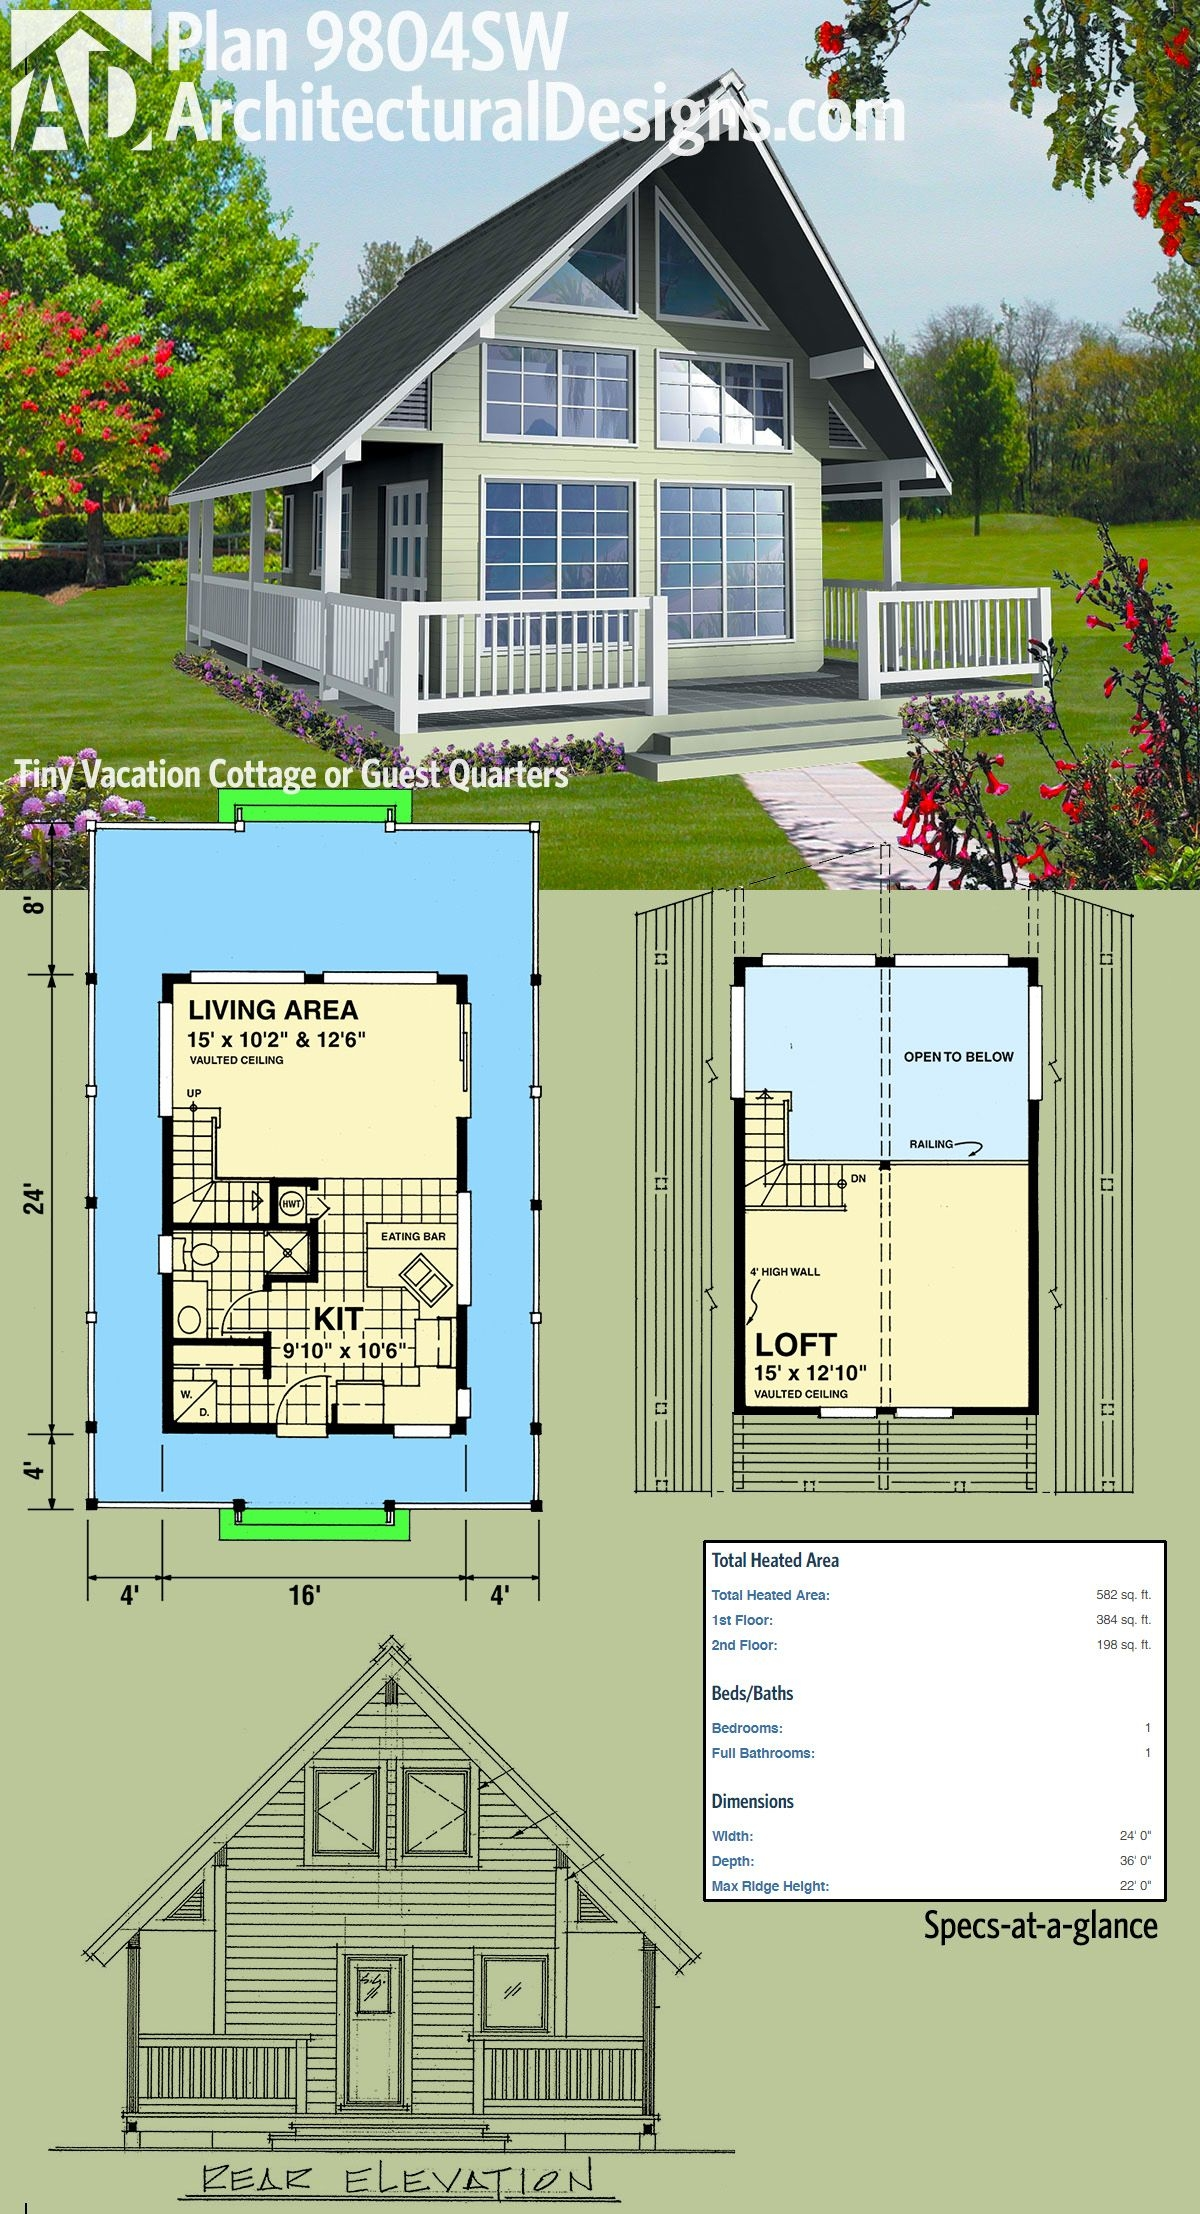 Amazing Cabin House Plans with Loft On Exquisite Plan 9804sw Vacation Cottage or Guest Quarters On Cabin House Plans with Loft